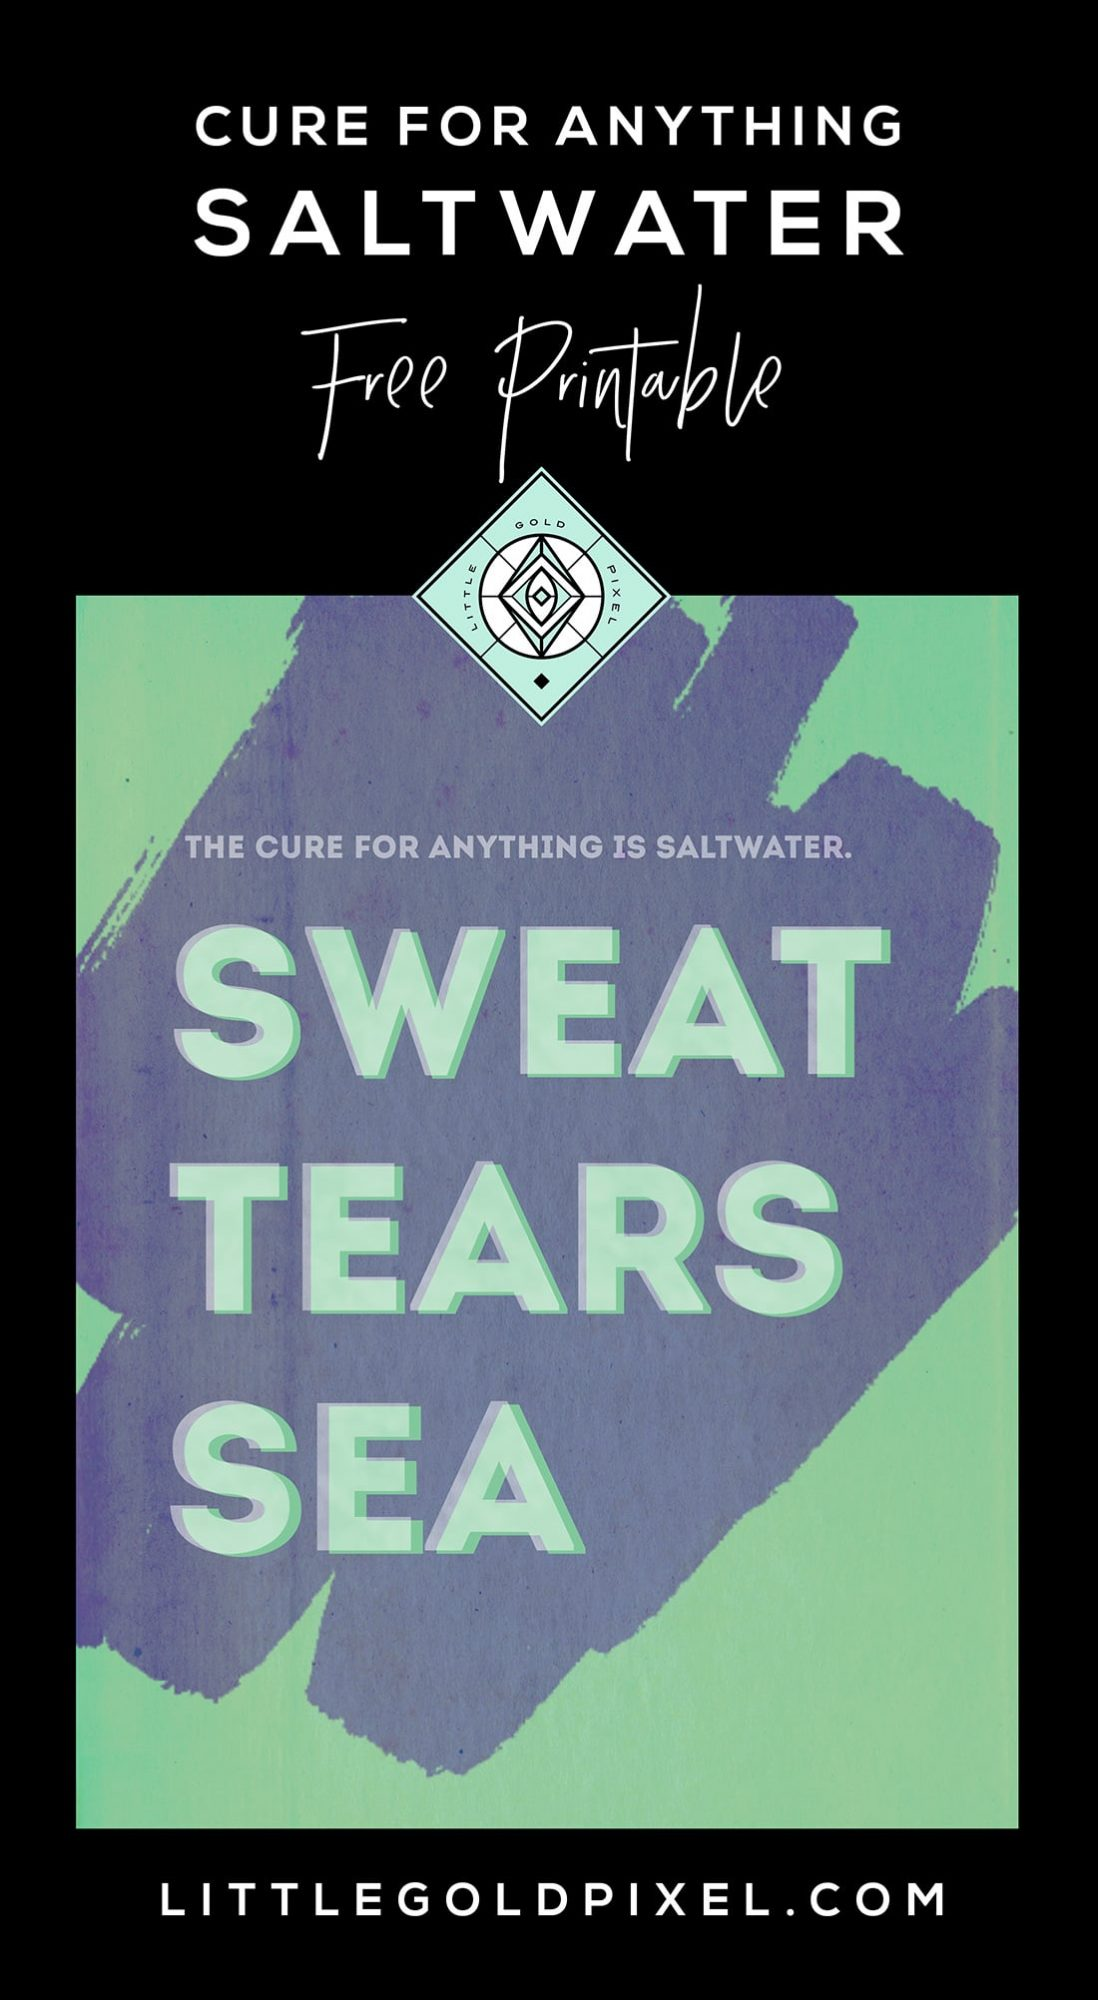 Free Sweat Tears Sea Printable (The Cure for Anything is Saltwater) • Little Gold Pixel